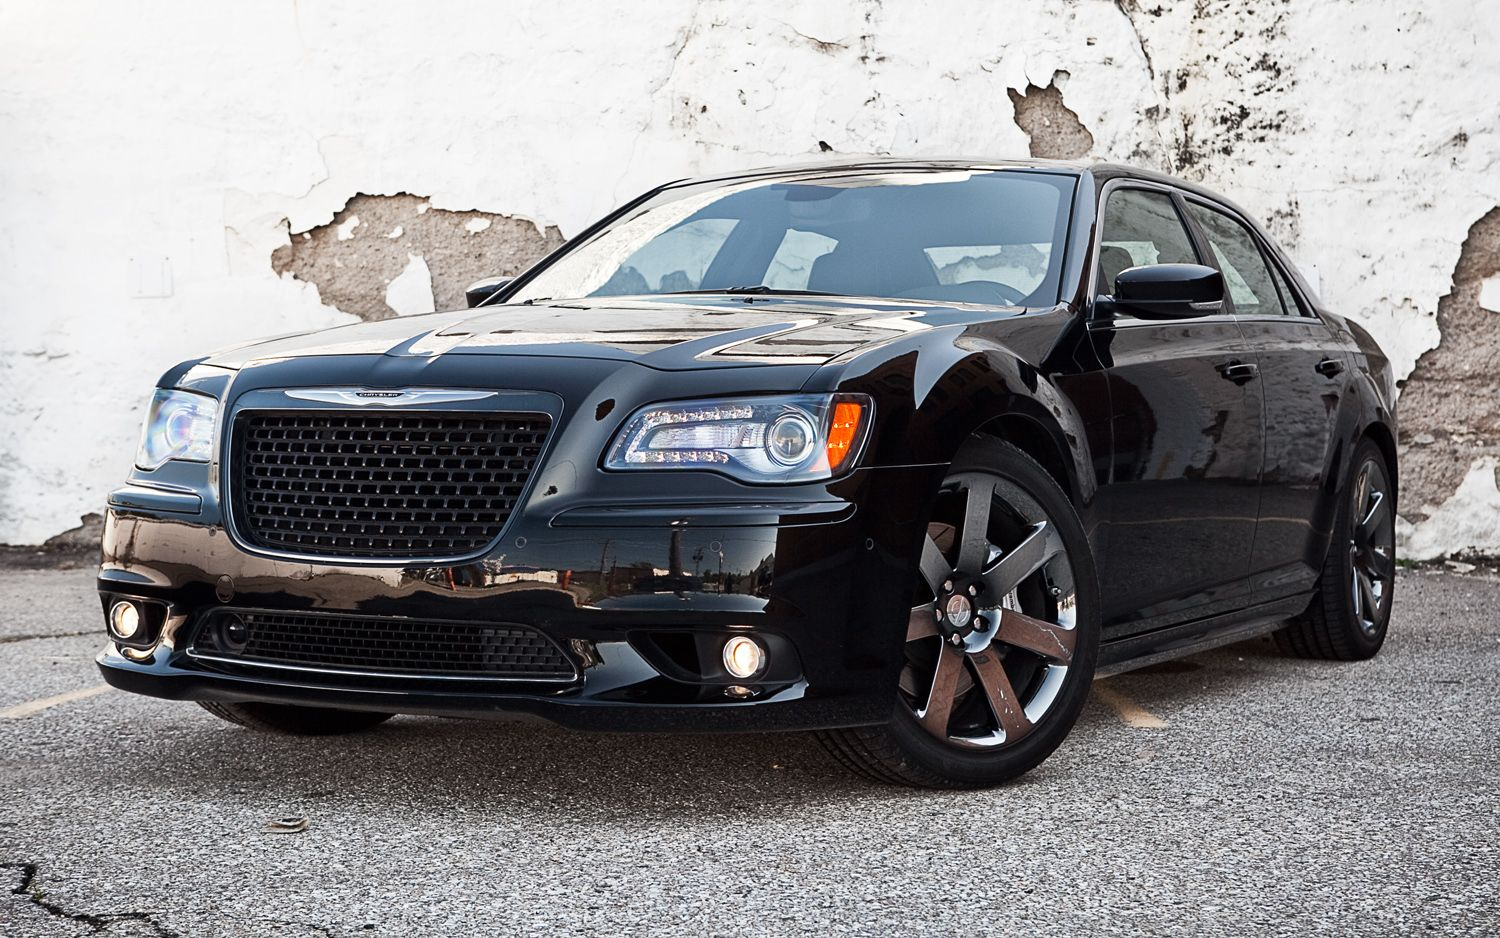 2013 chrysler 300 google search chrysler pinterest chrysler 300 interior chrysler 300 and cars auto